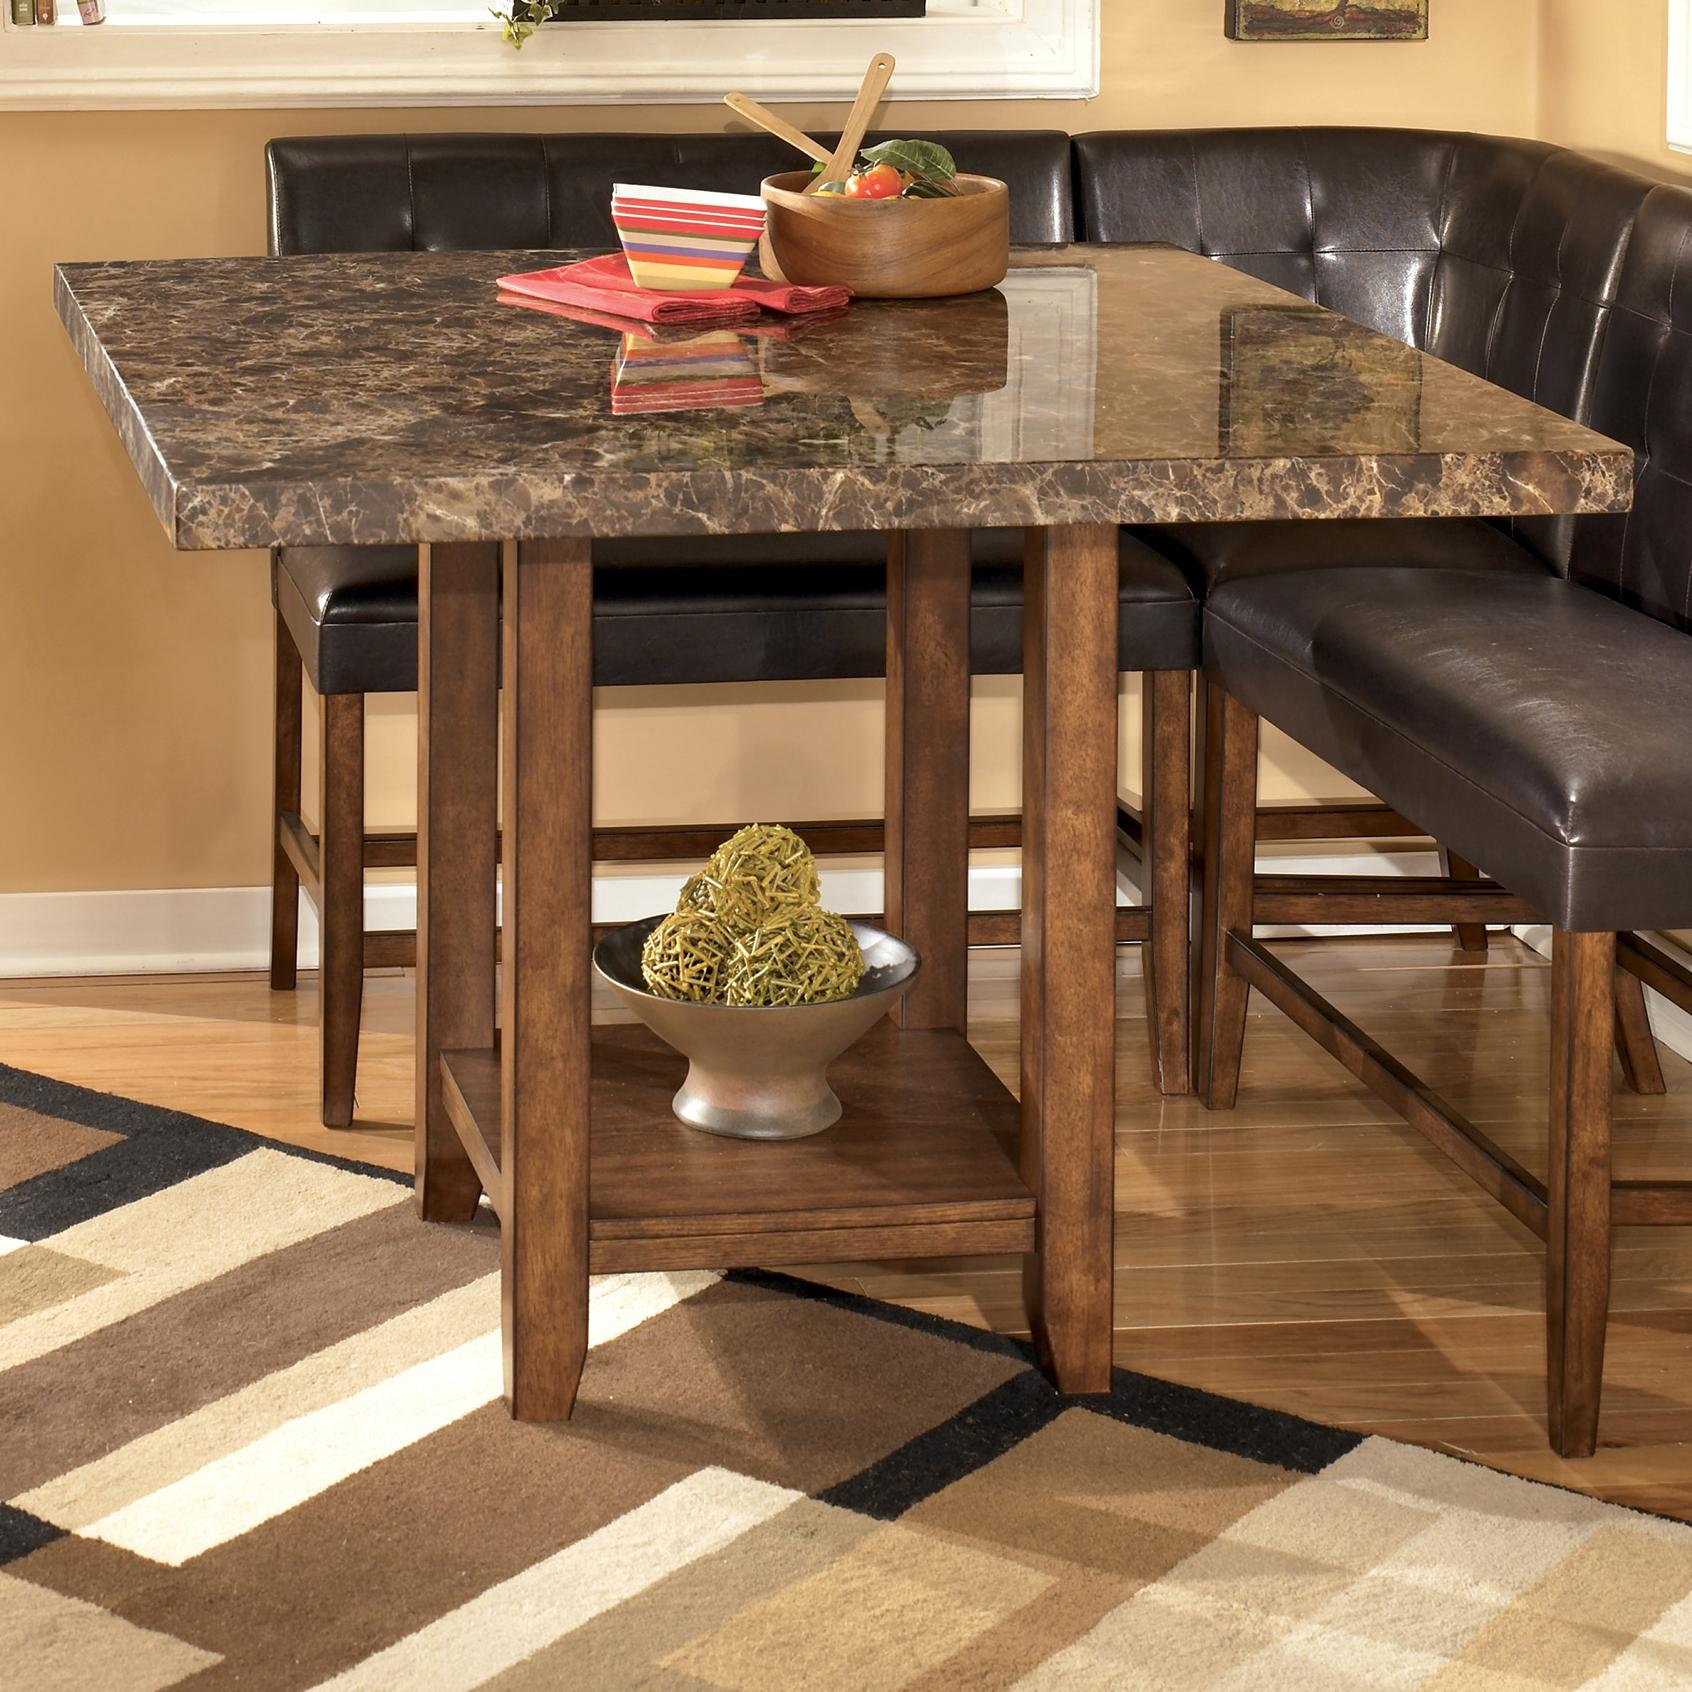 Counter Height Table Ashley Furniture : ... Square Counter Height Pub Table - Del Sol Furniture - Pub Tables